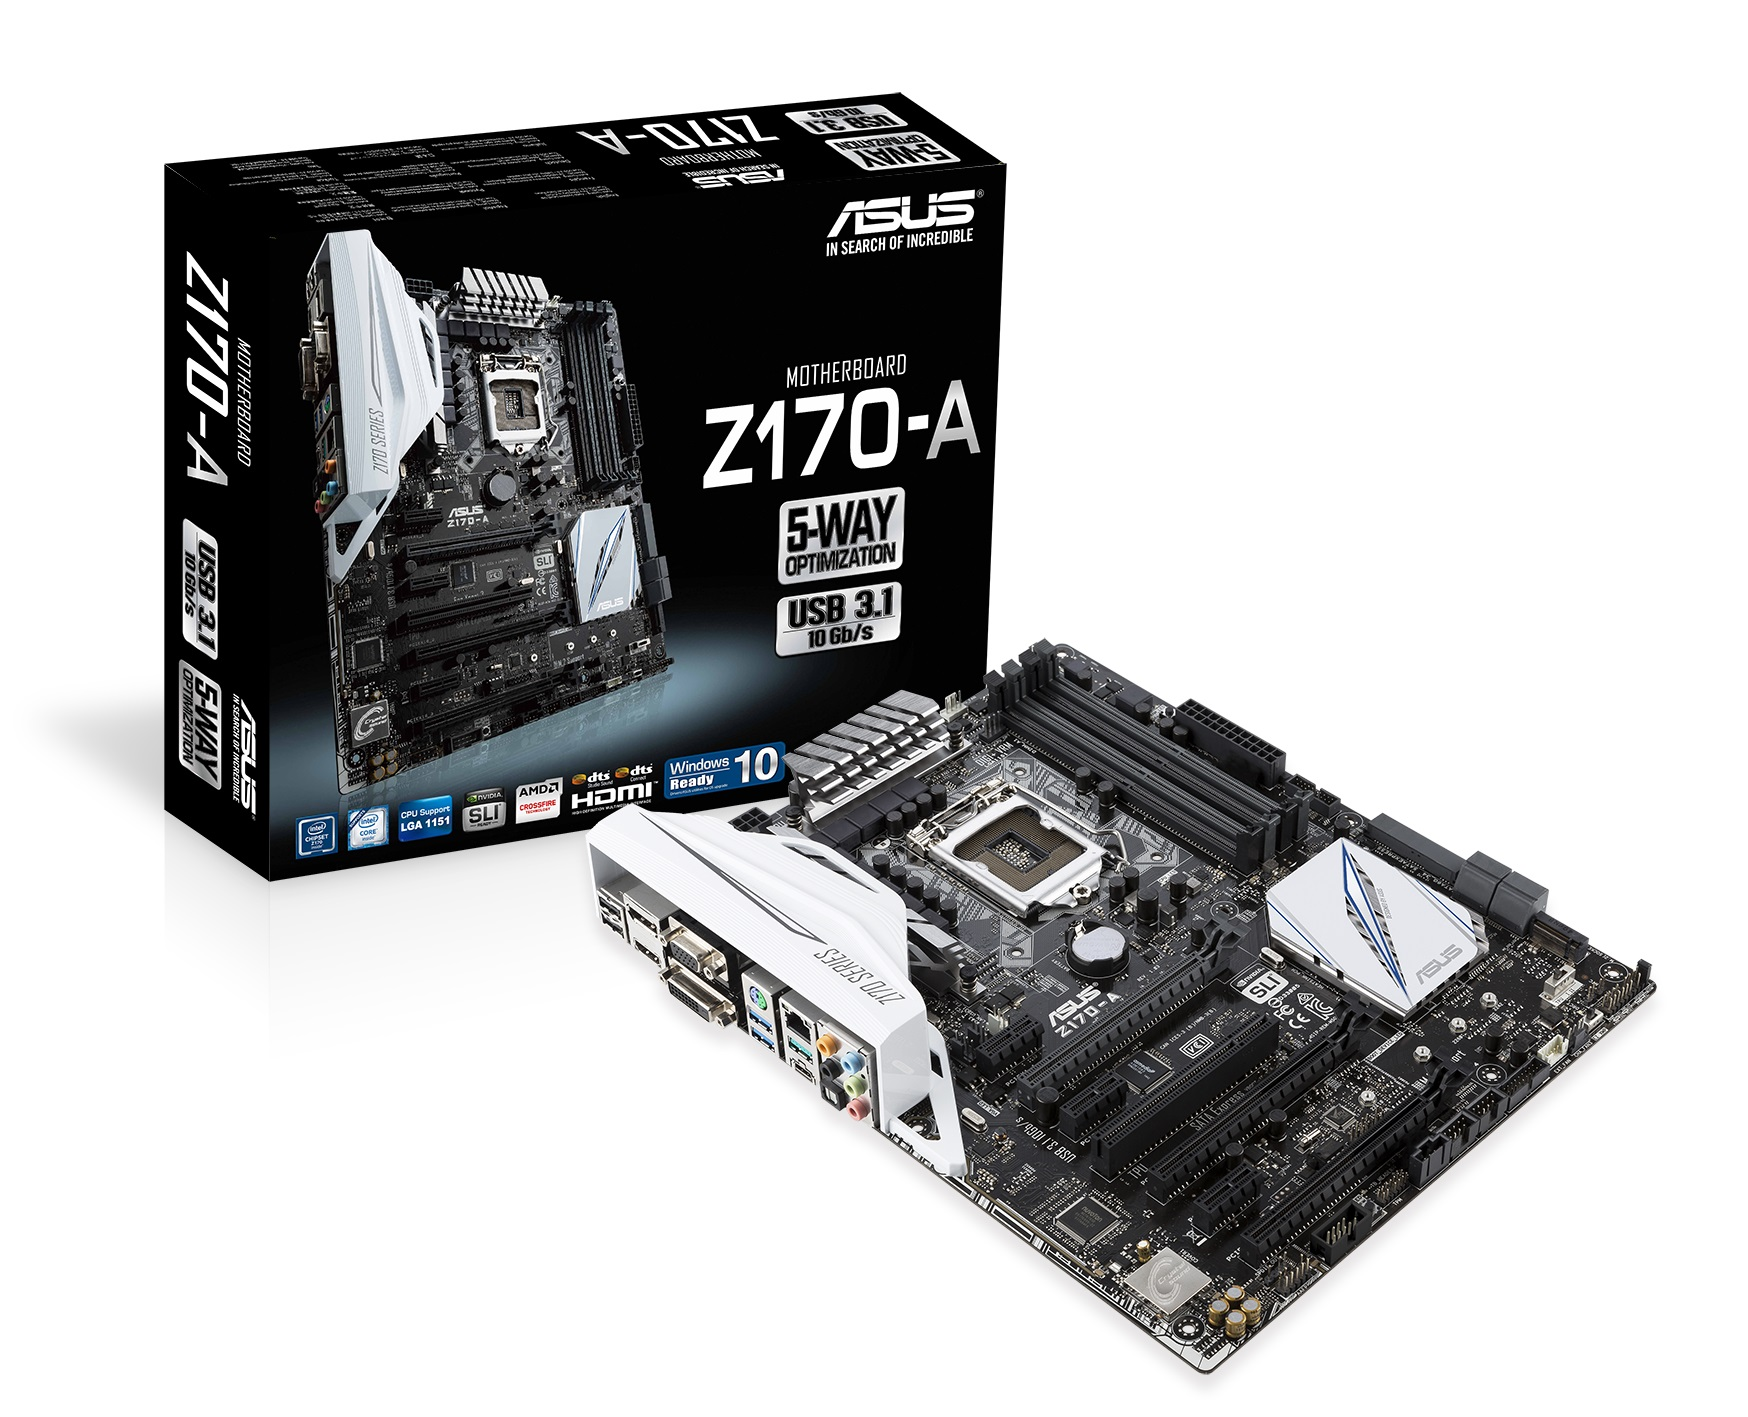 ASUS Z170 A